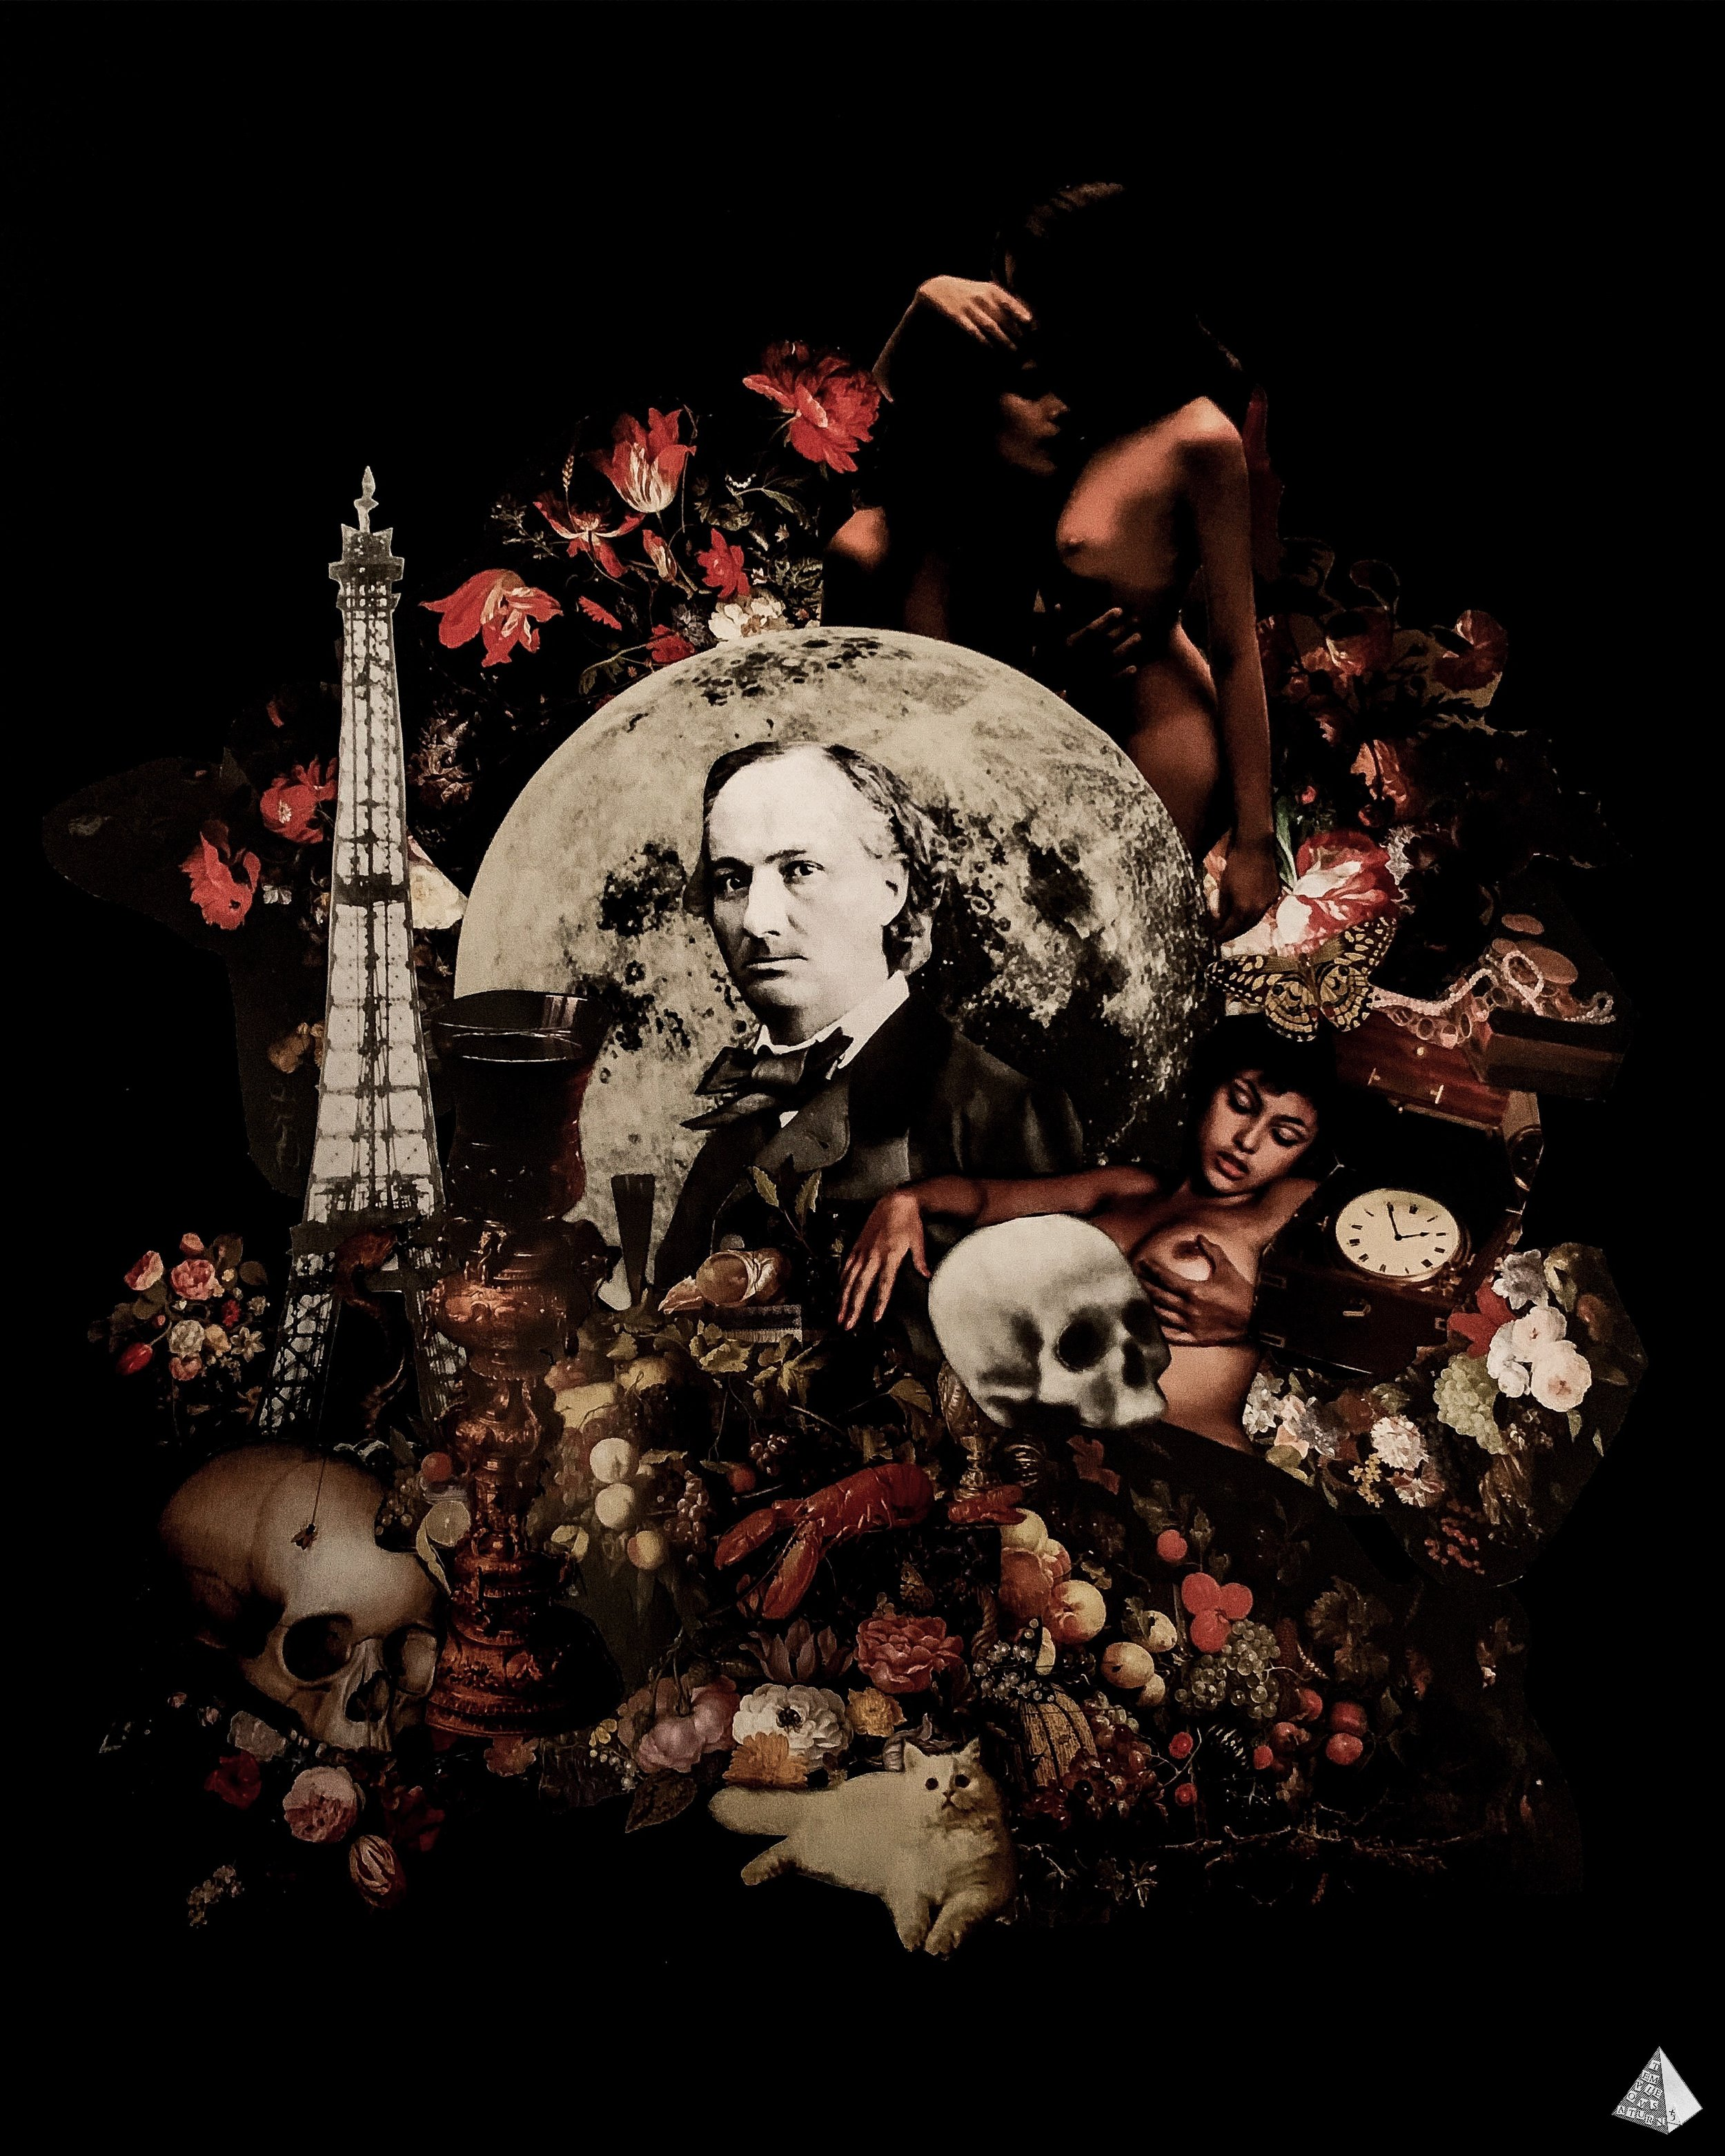 Baudelaire by Joan Pope (Temple ov Saturn)